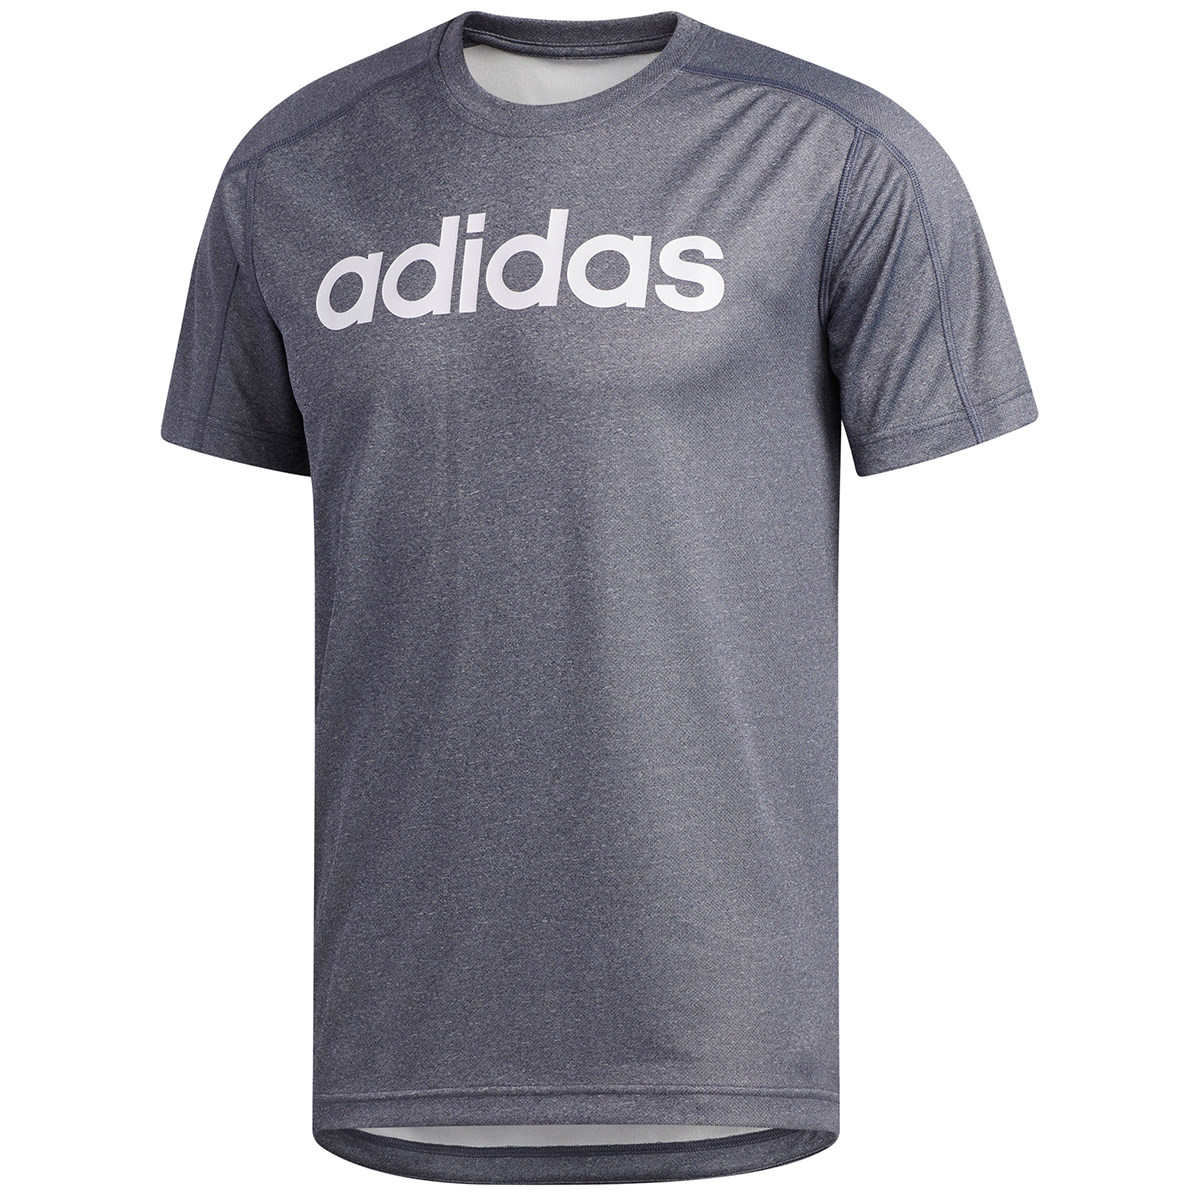 Adidas Men's D2M Short-Sleeve Tee - Blue, XL